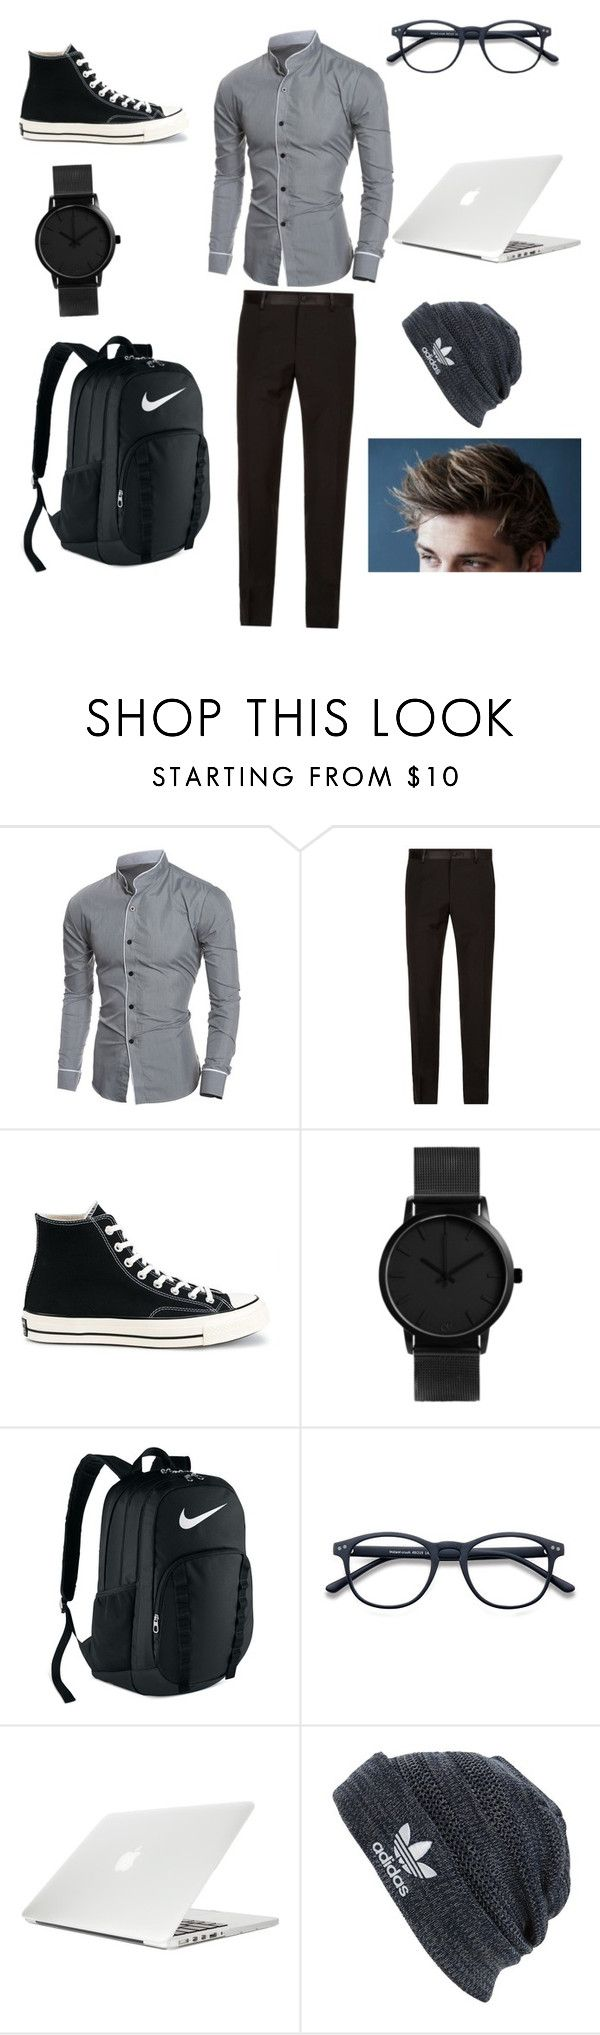 """College student style."" by camille-lajoie on Polyvore featuring Dolce&Gabbana, Converse, NIKE, Moshi, adidas, men's fashion and menswear"